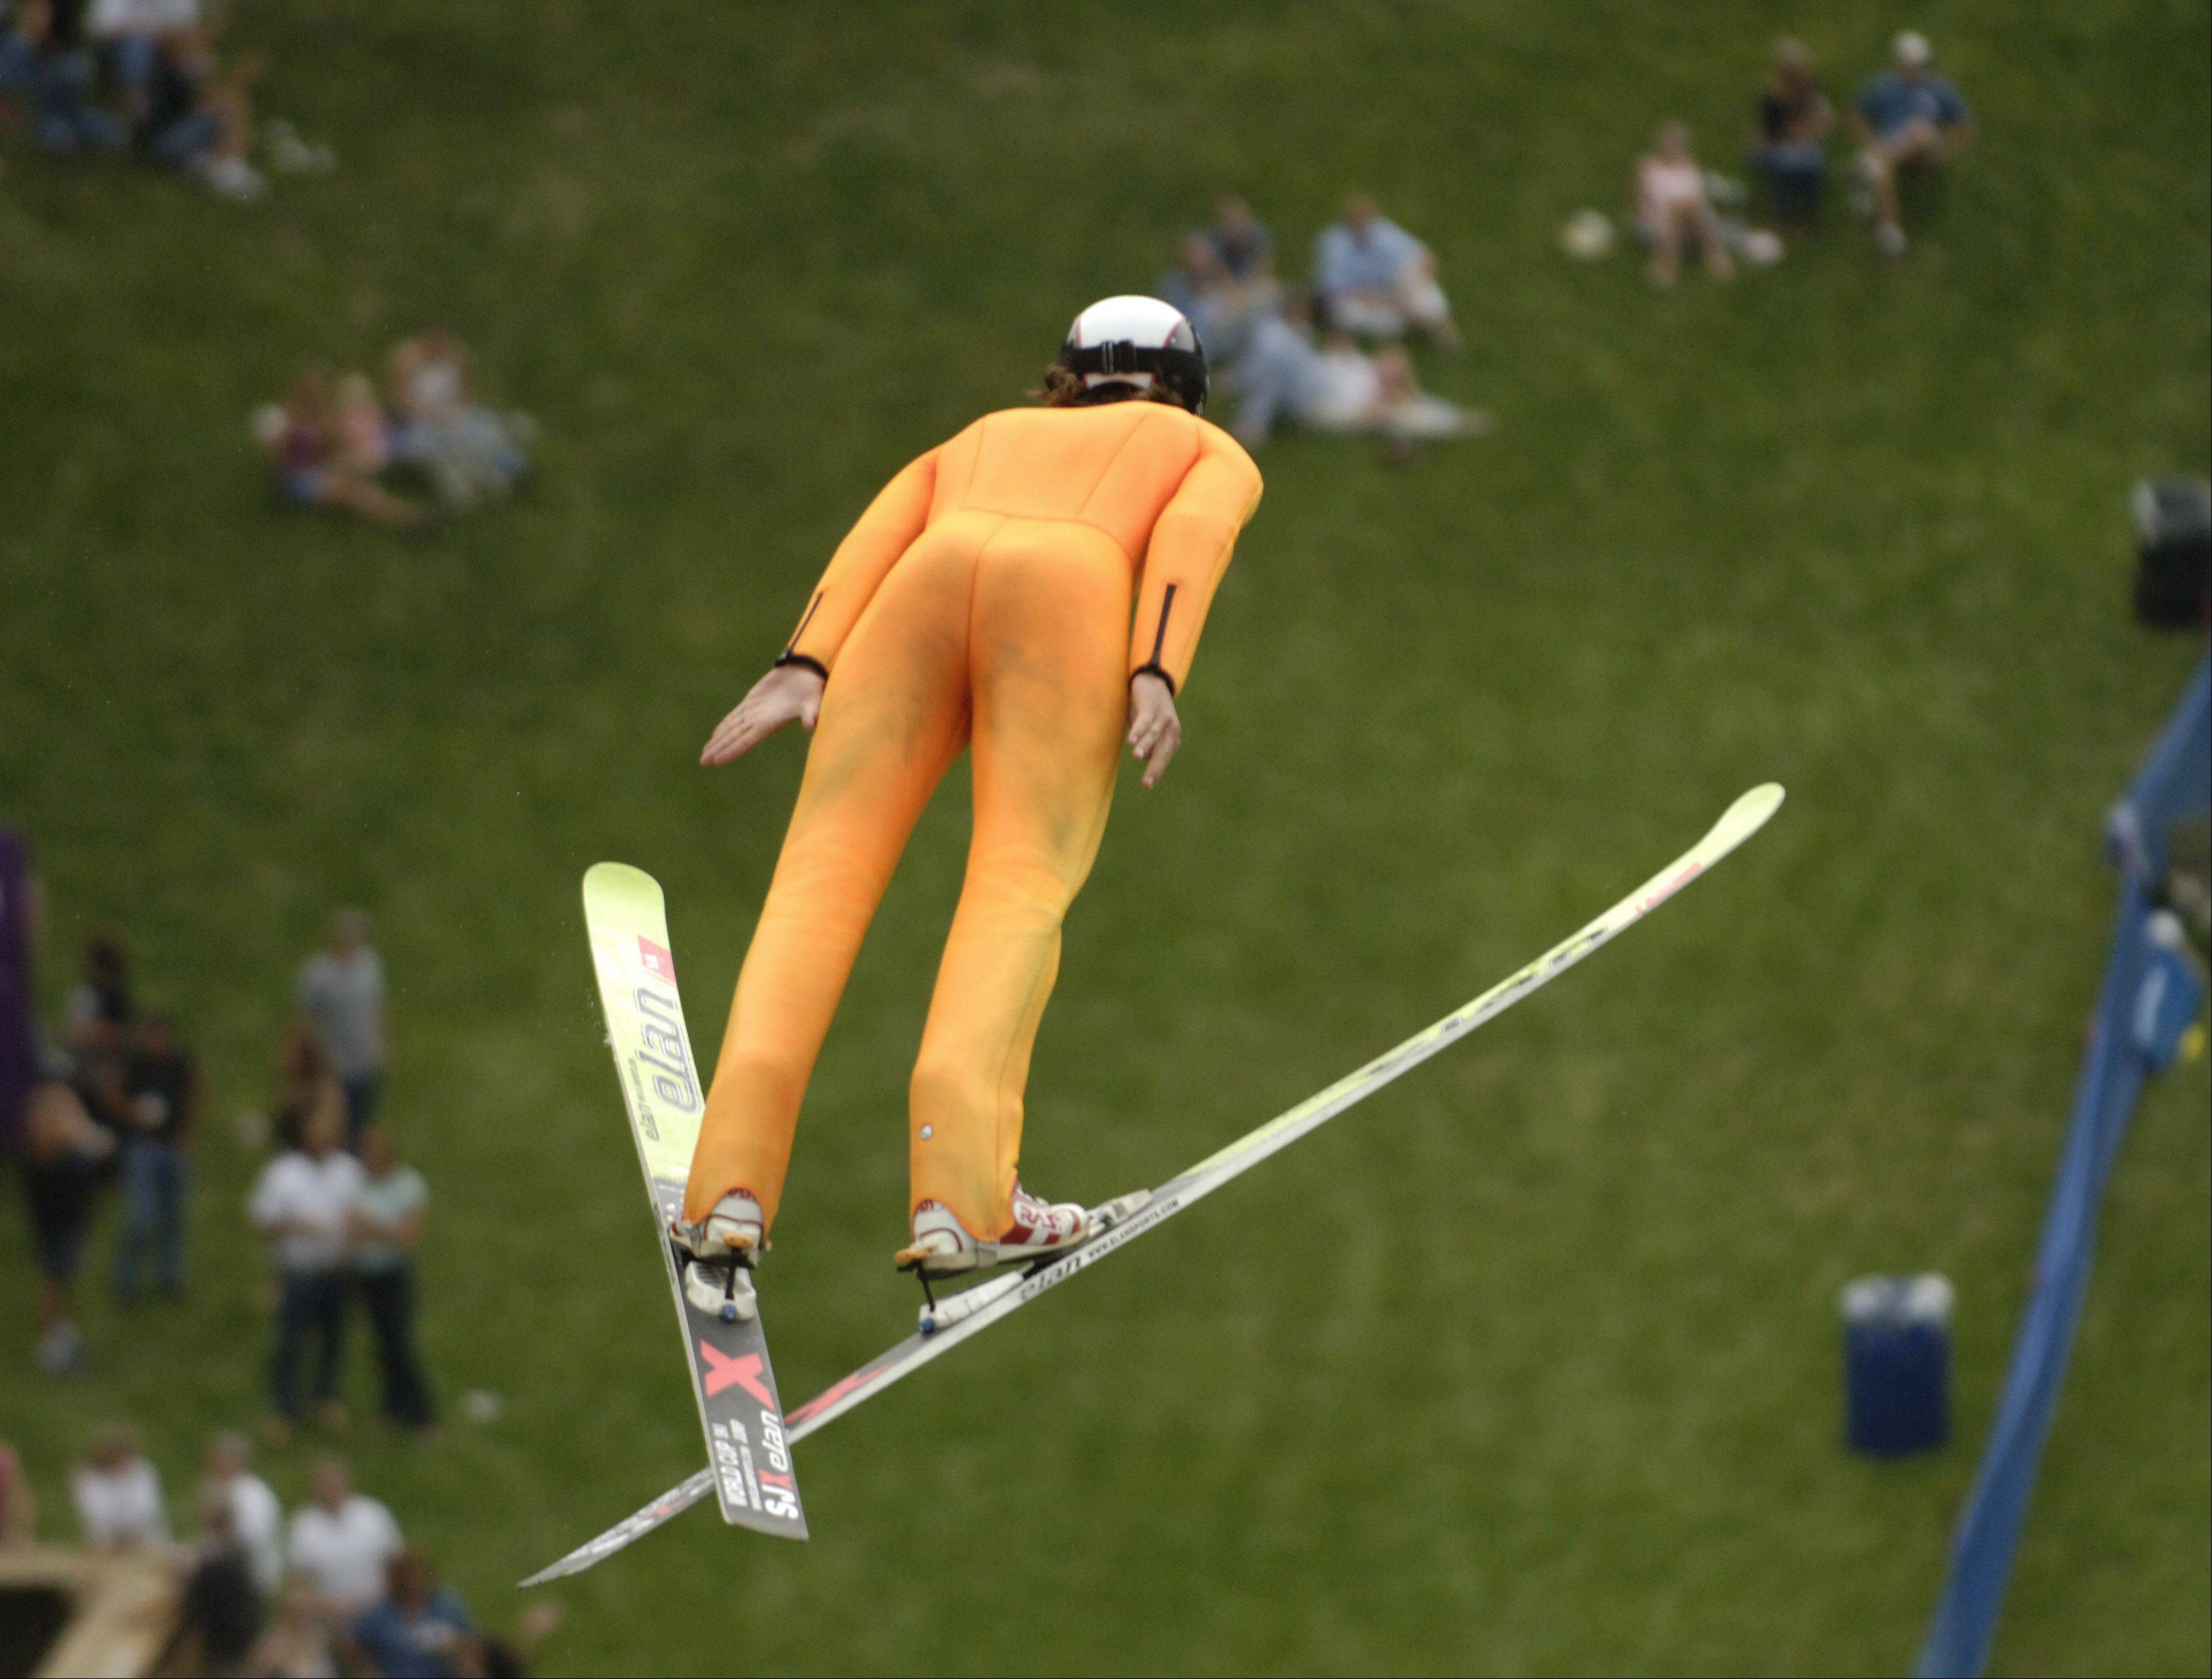 Anders Johnson, a U.S. ski jumper, flies over the hill at Norge Ski Club in 2006.